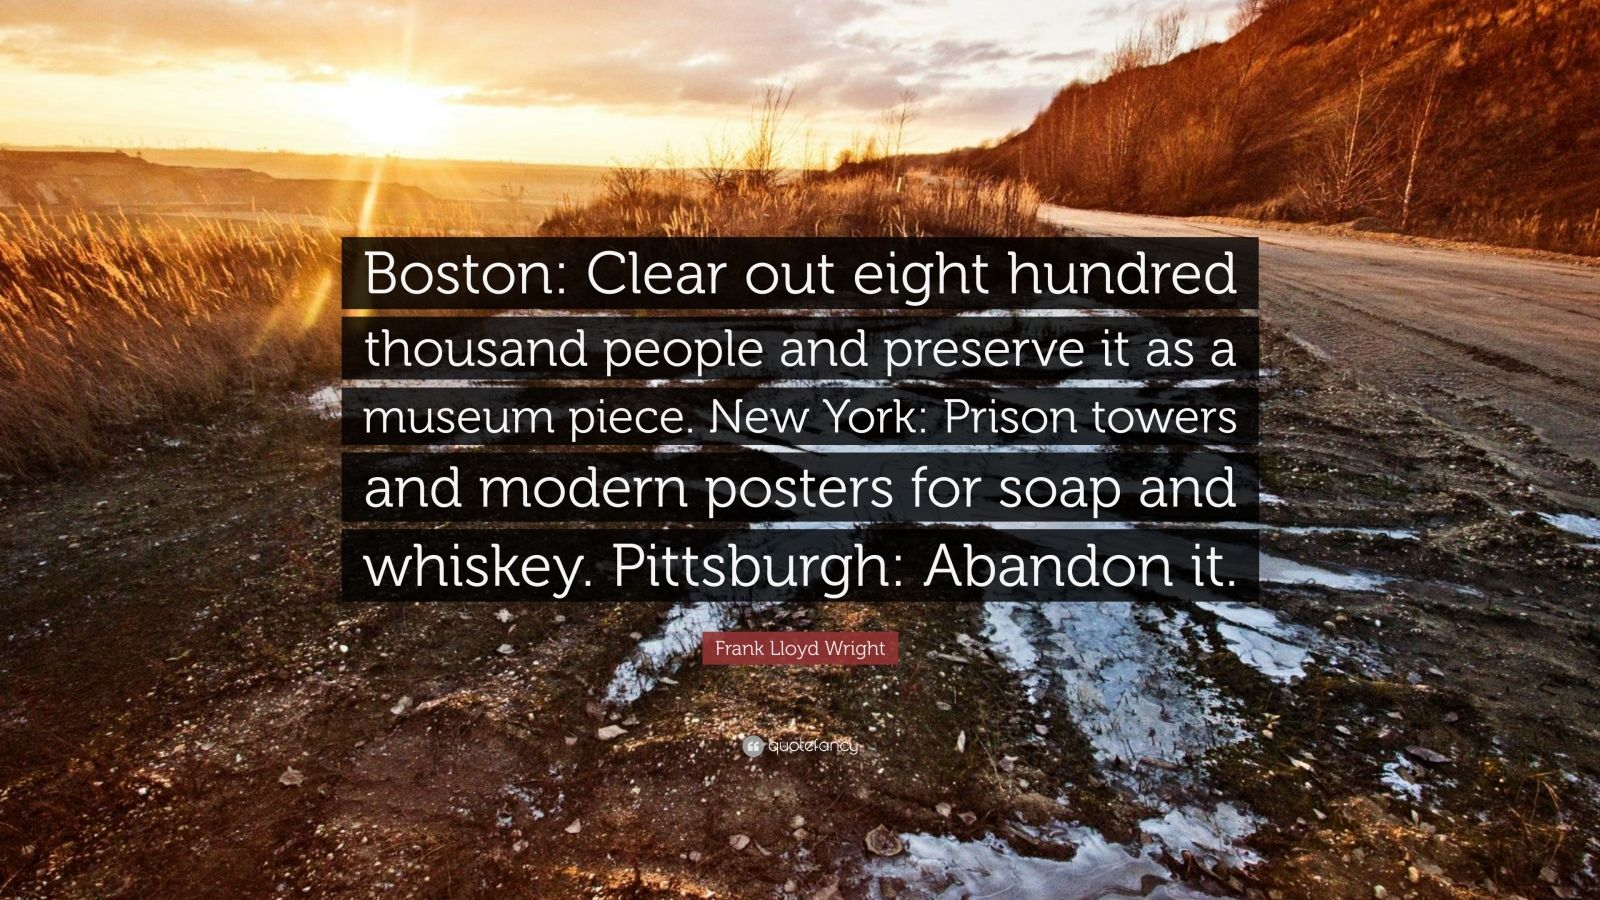 """Frank Lloyd Wright Quote: """"Boston: Clear out eight hundred thousand people and preserve it as a museum piece. New York: Prison towers and modern posters for soap and whiskey. Pittsburgh: Abandon it."""""""